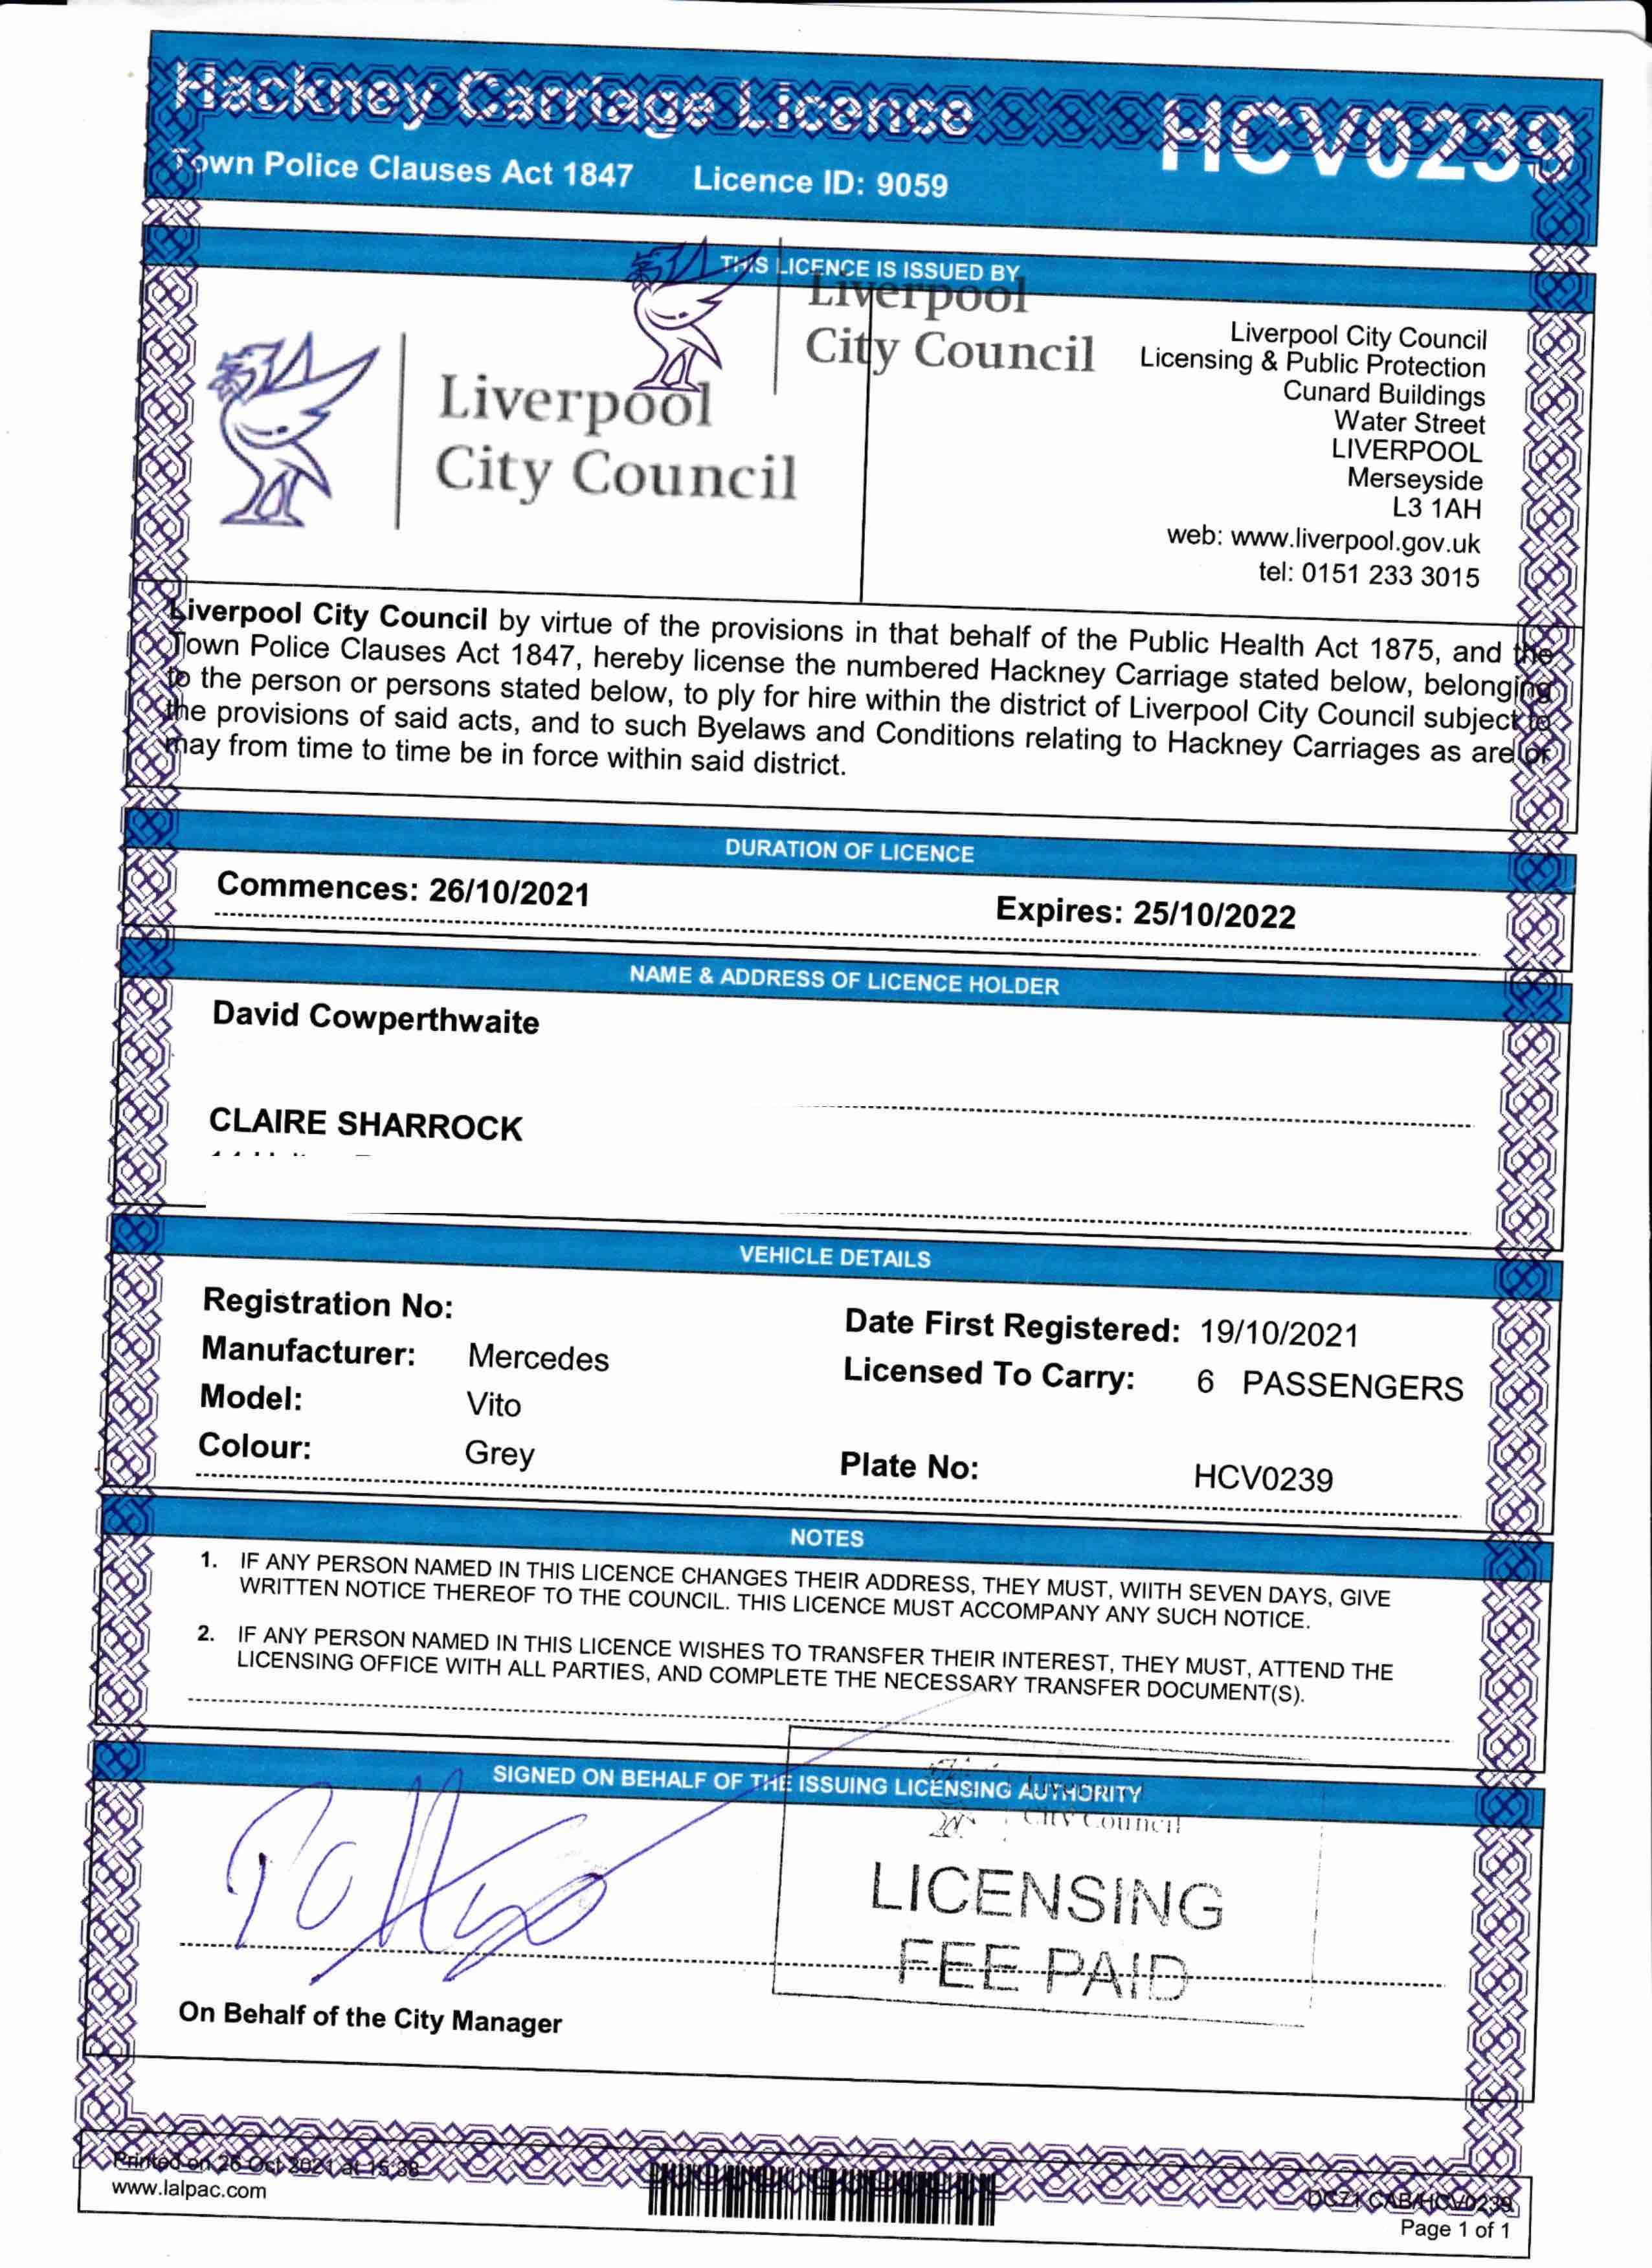 Liverpool Taxi Transfers transport licence